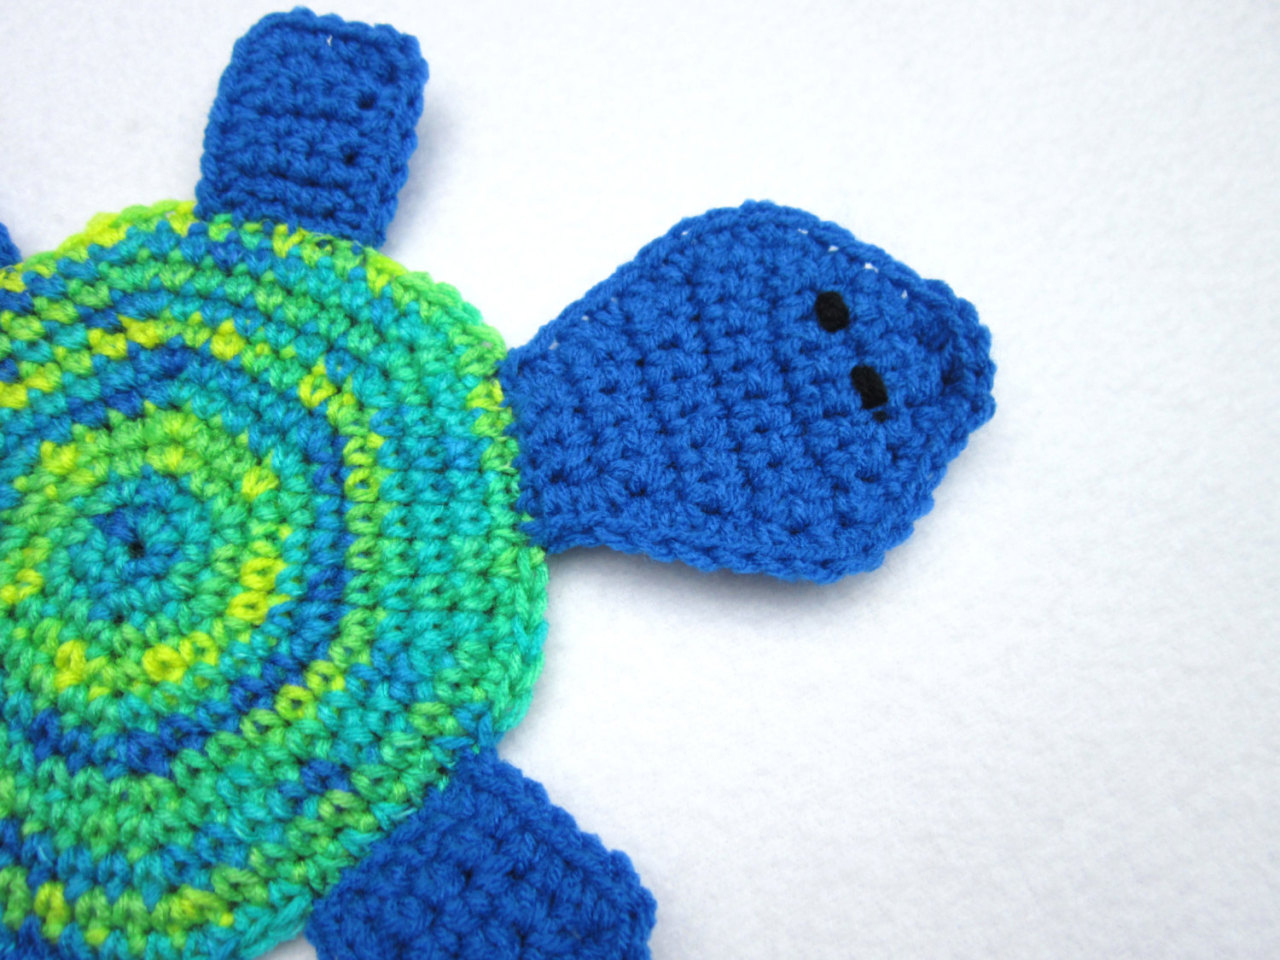 Crochet Trivets Hot Pads Crocheted Charlene Turtle Pot Holder Hot Pad Crochet Trivet